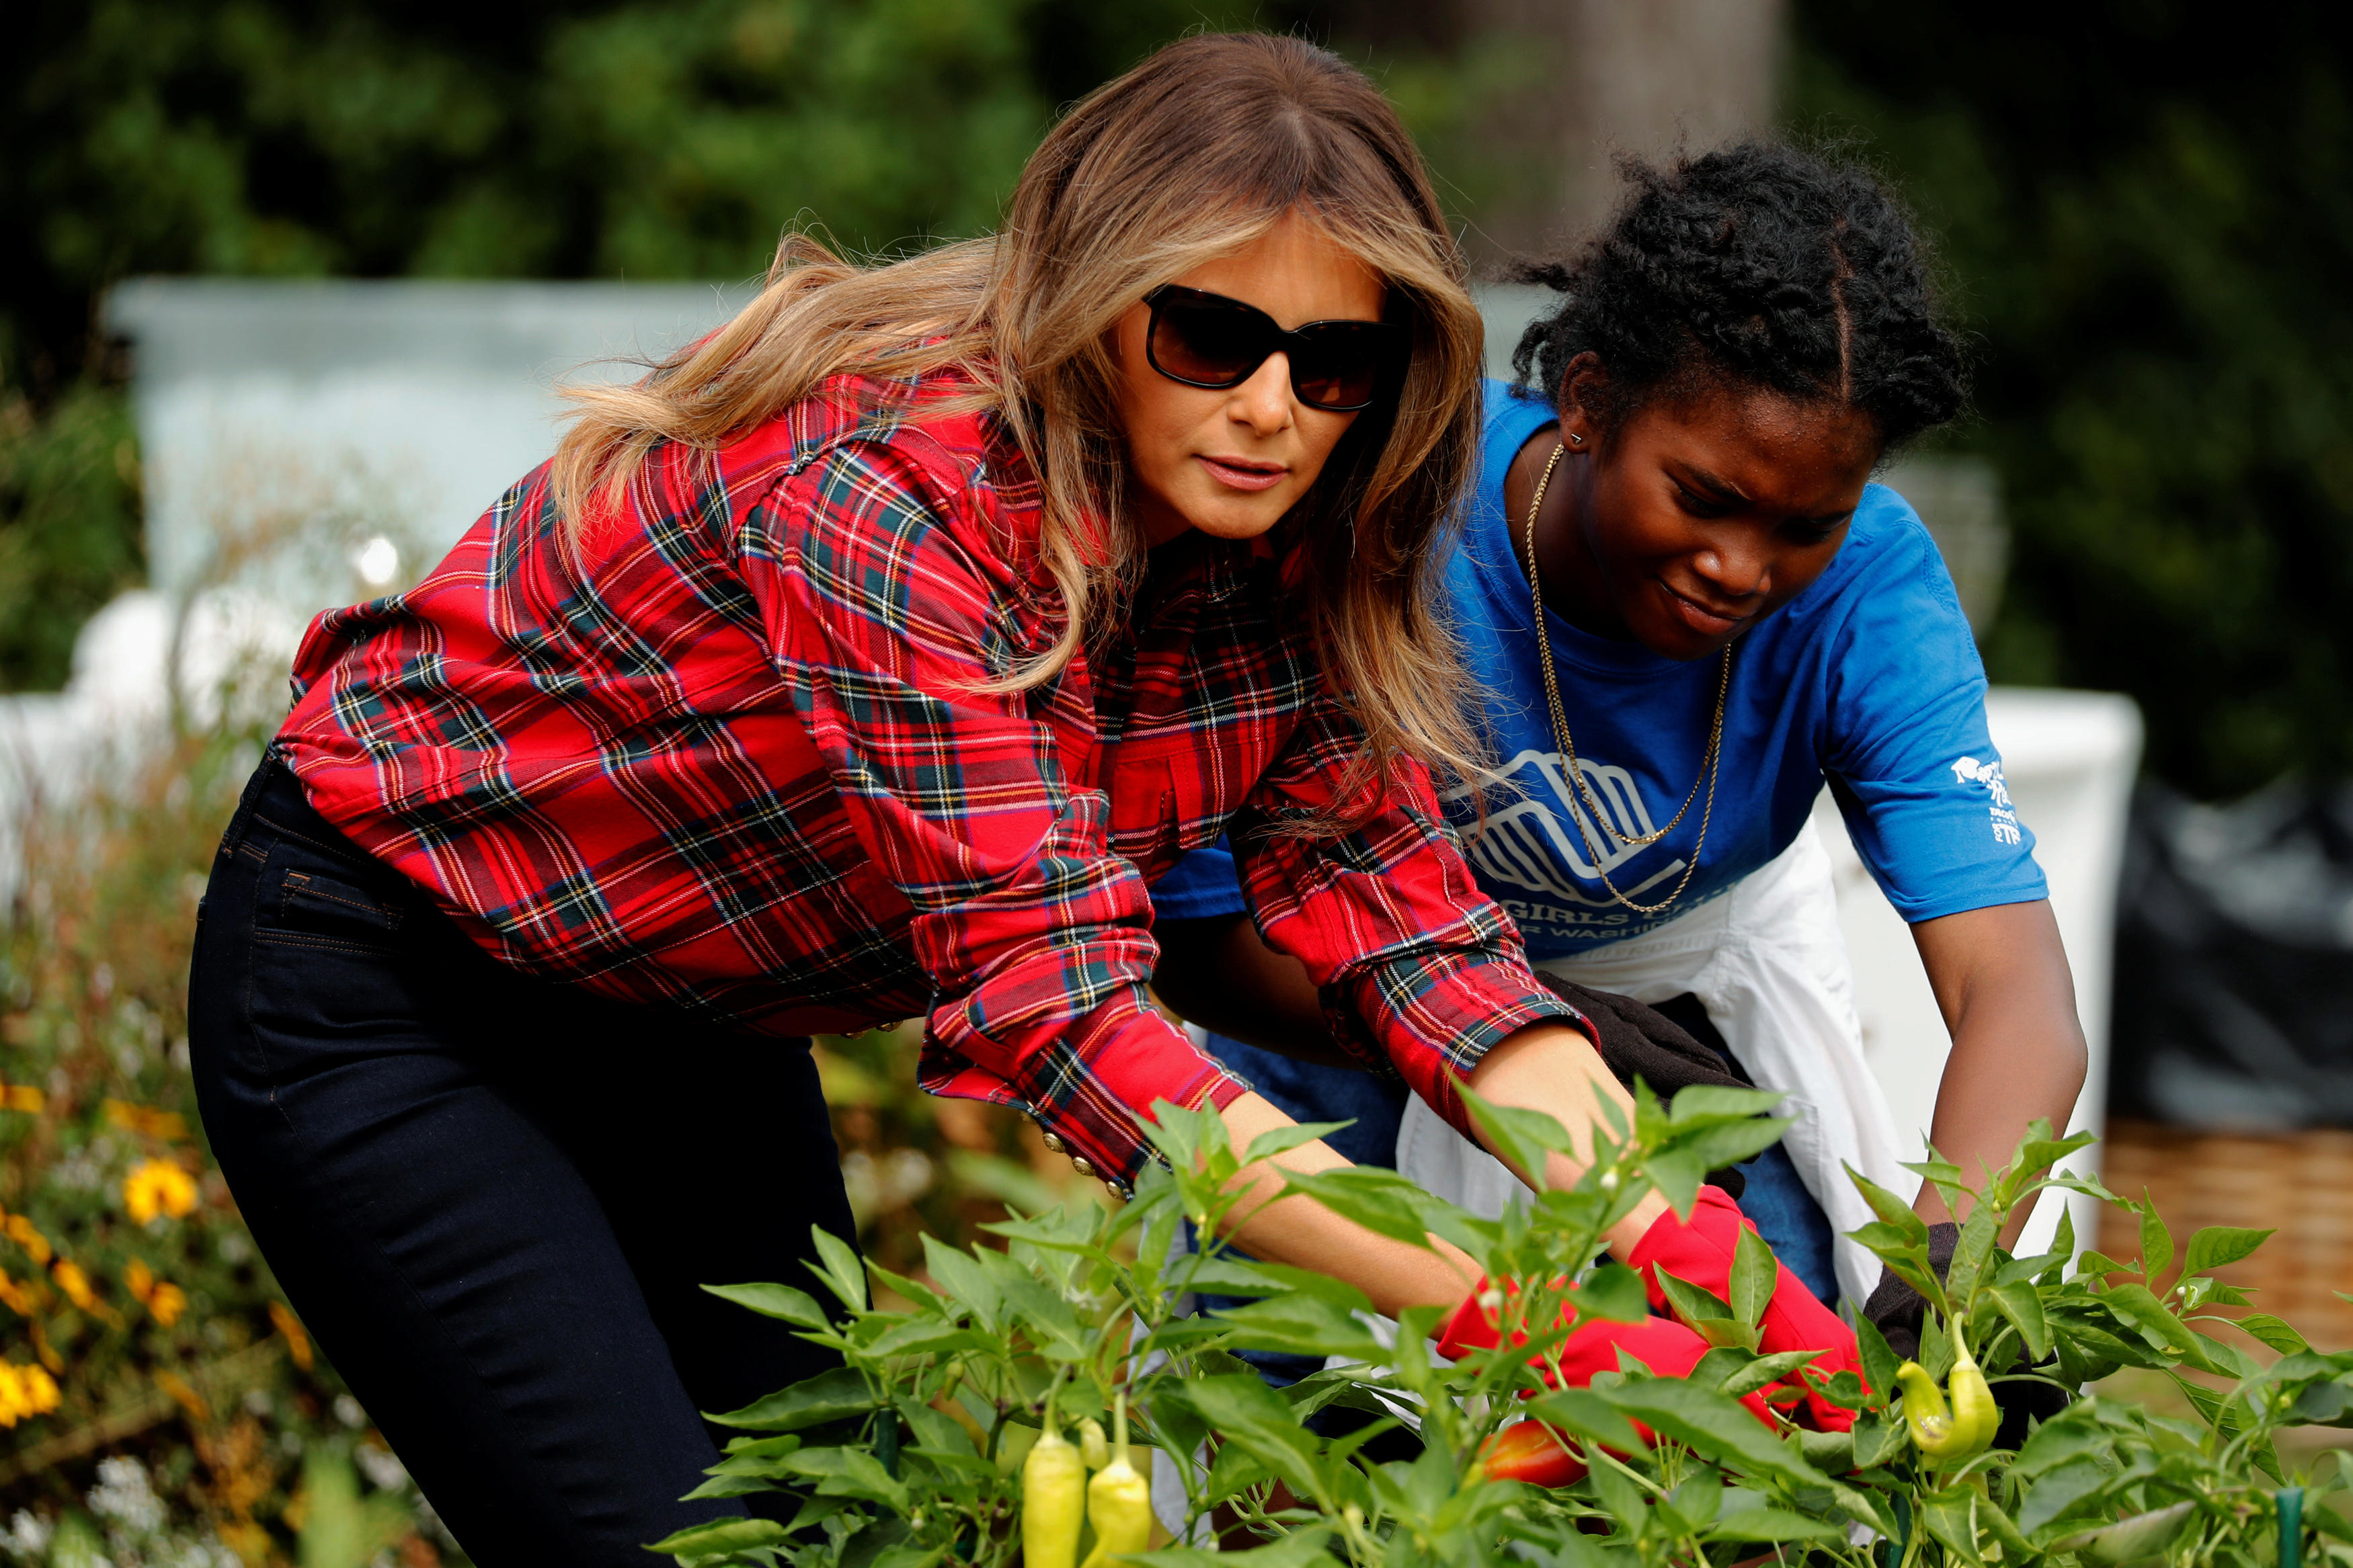 Melania Trump Harvests And Plants In White House Garden Cbs News